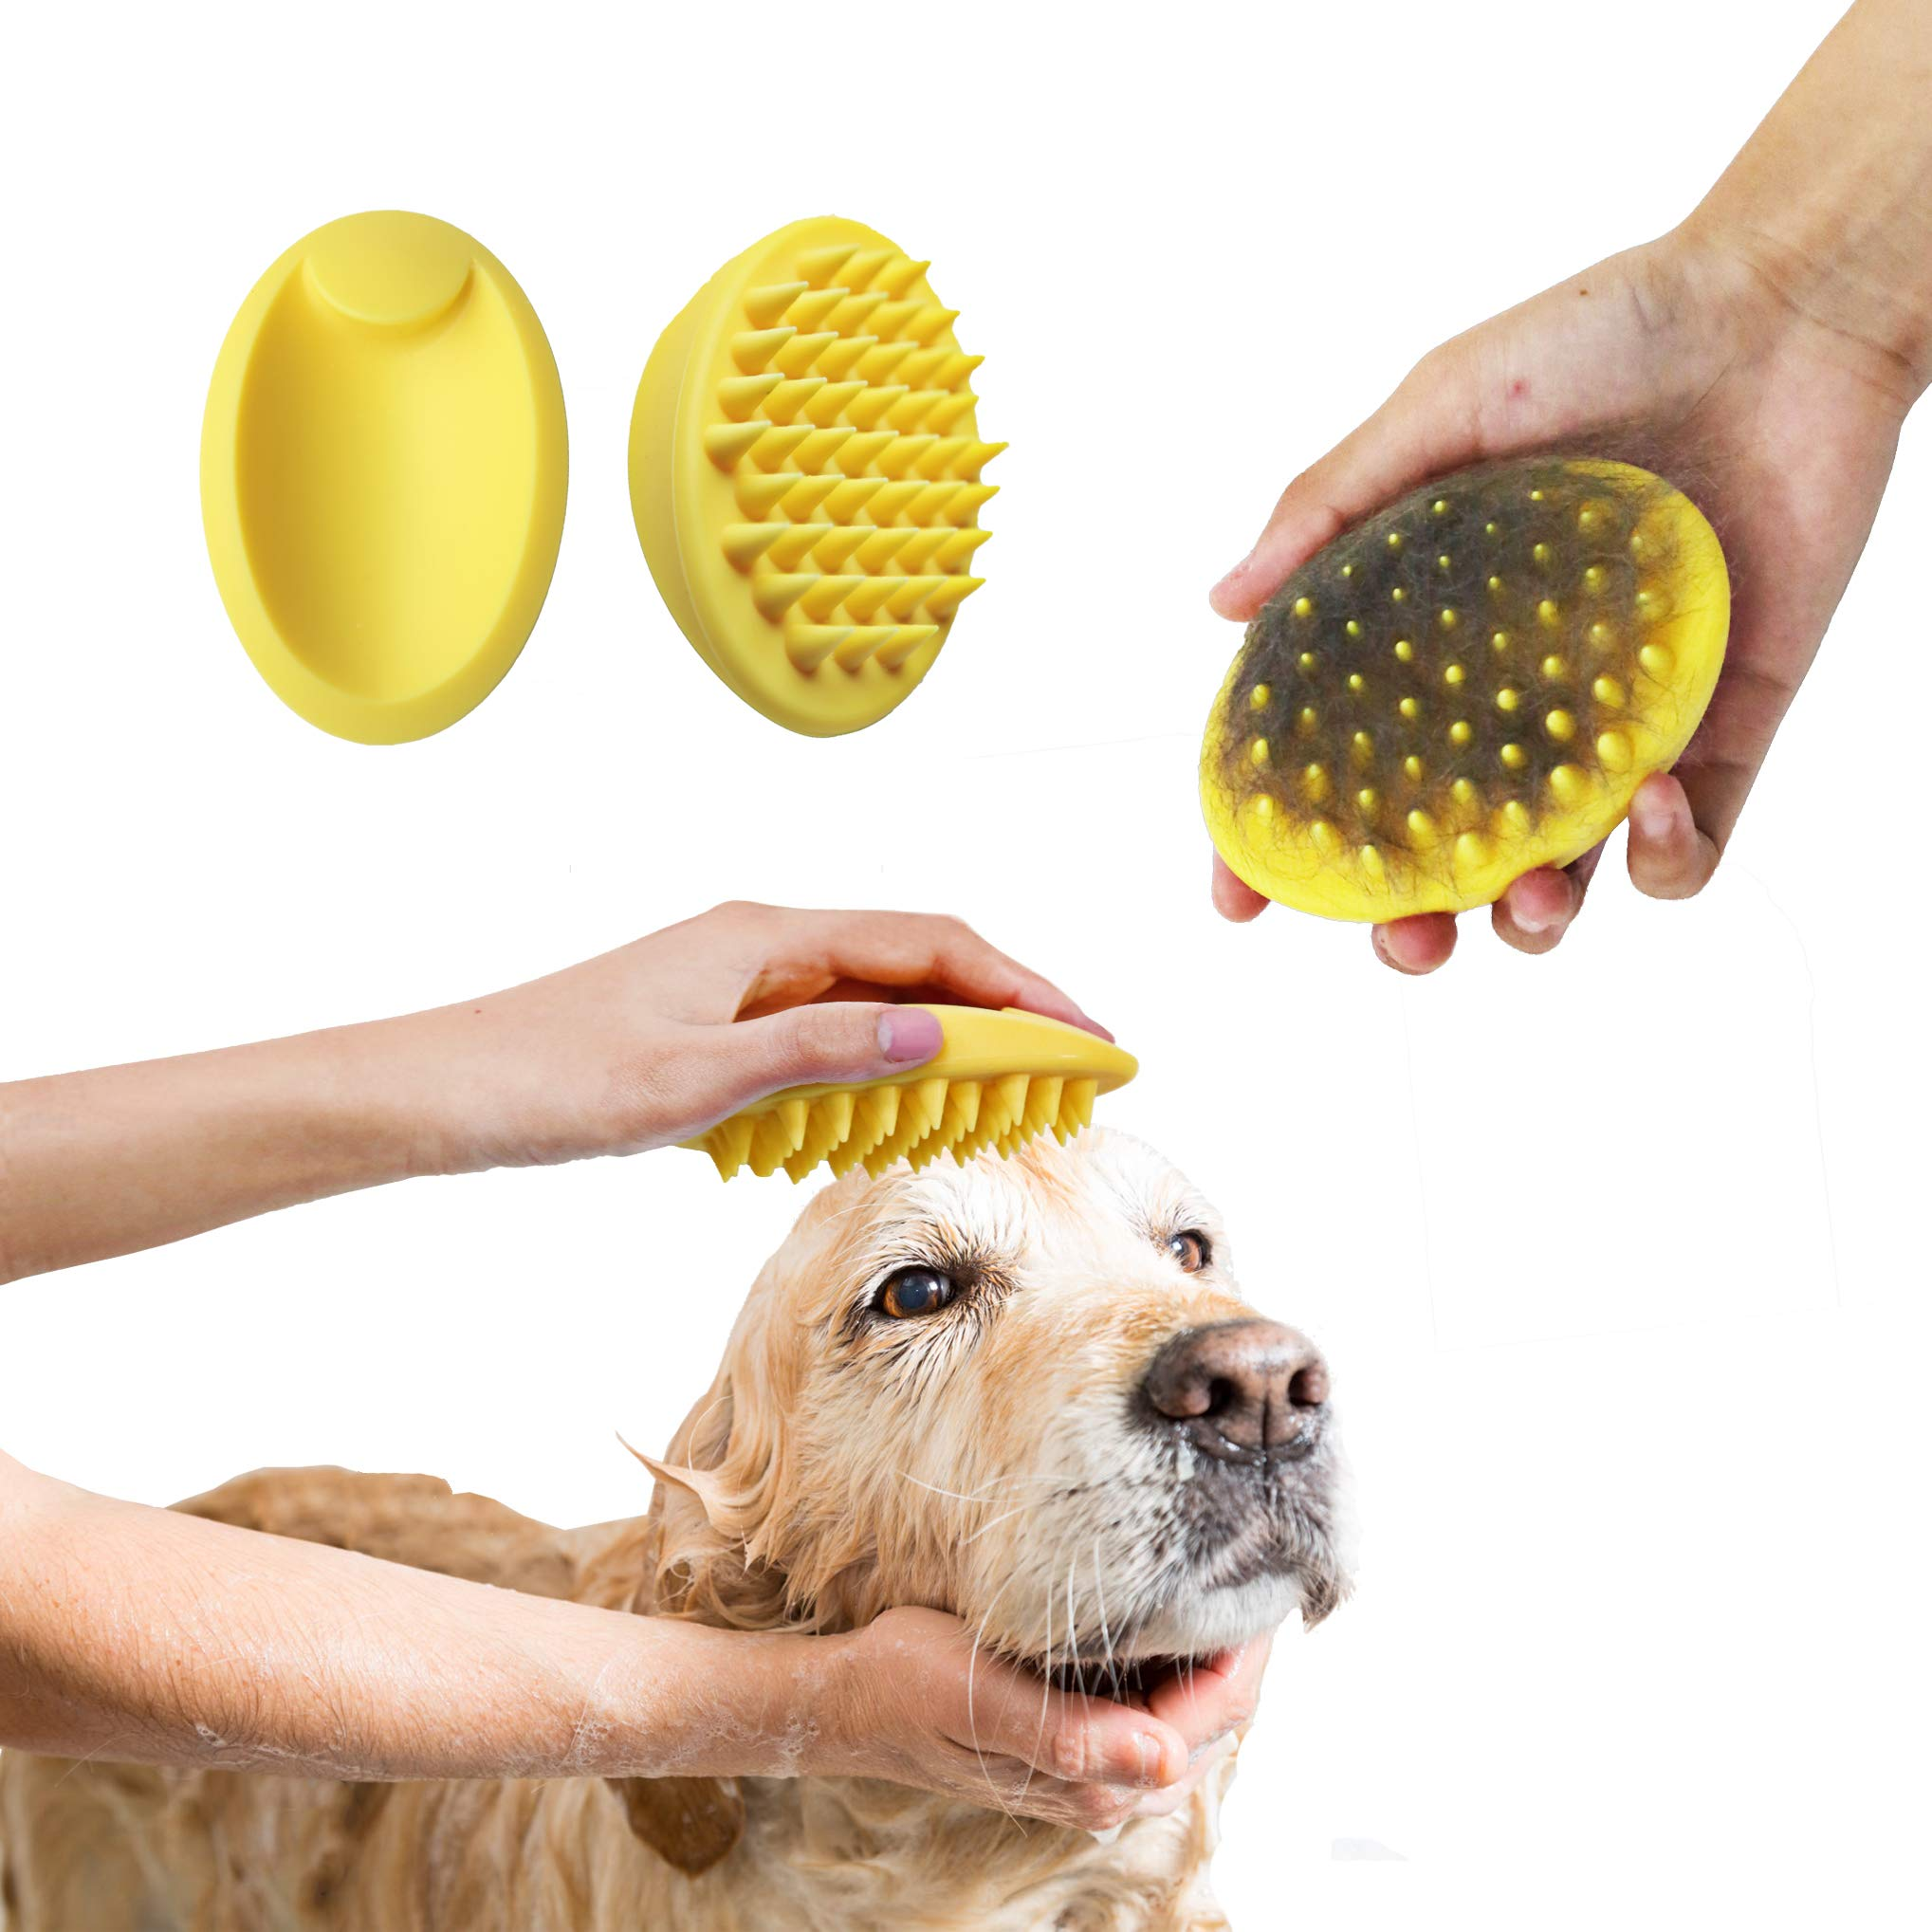 Blingbrione 3 in 1 Pet Soft Silicone Brush for Bath/Massaging/Grooming Cats & Dogs, Removing Loose Fur/Cleaning Skin Gently/Making Hair More Gloss, Suitable for Short Long Hair pets. (Yellow)